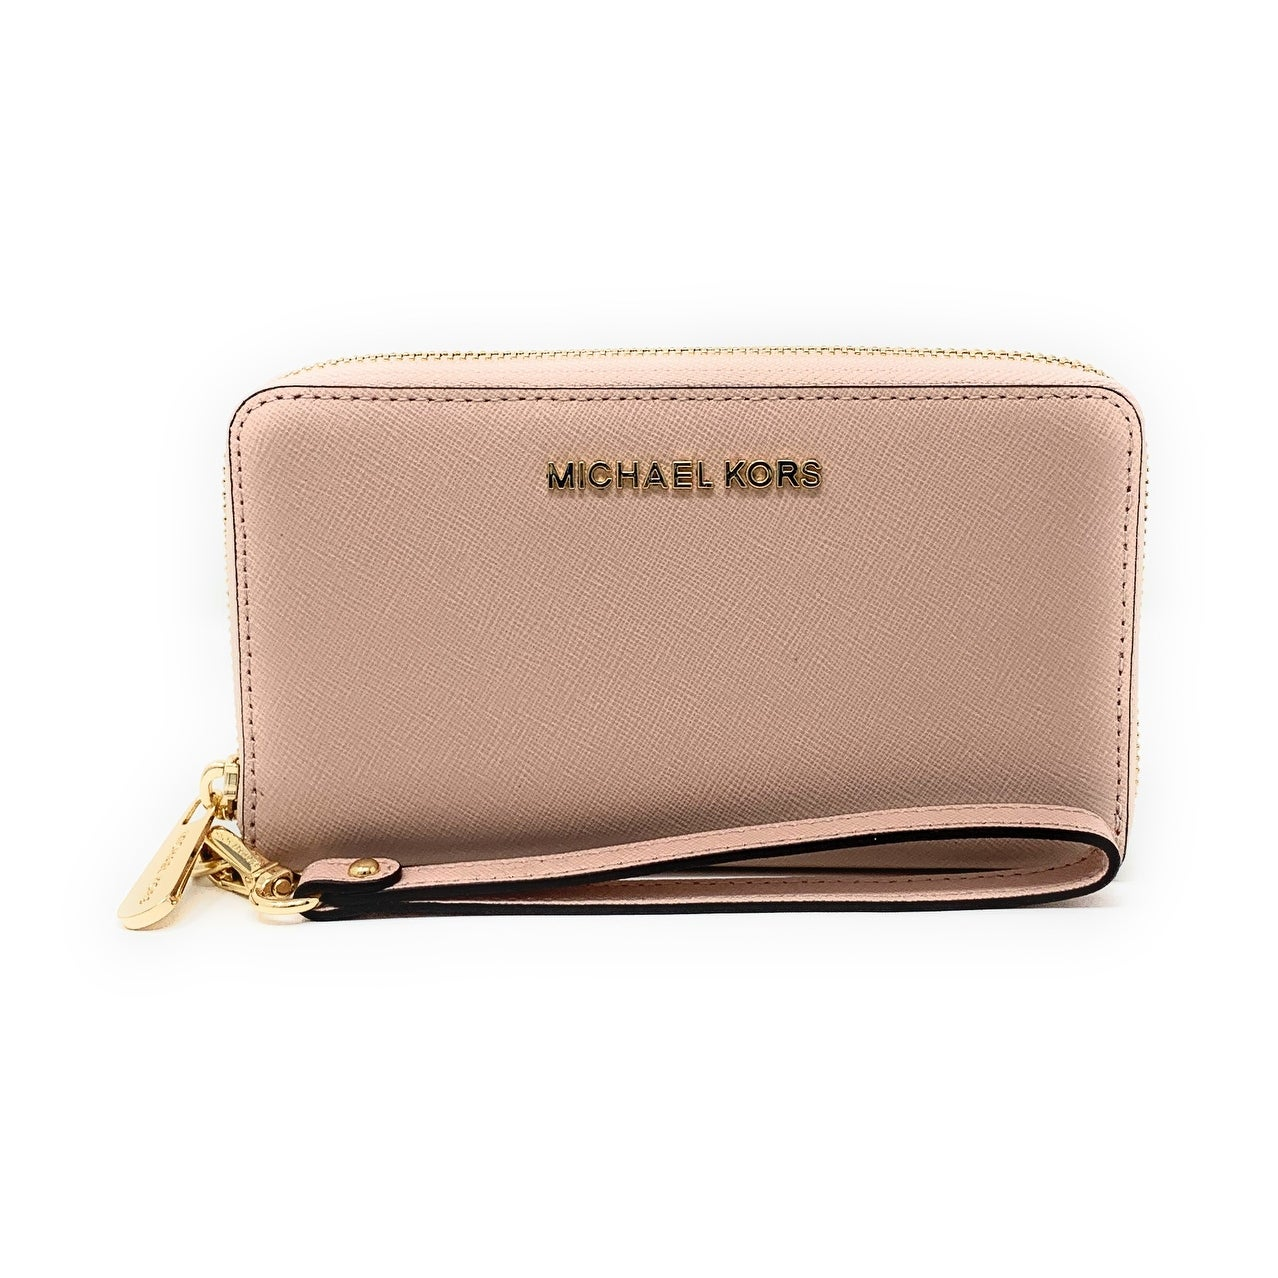 91b8585711cf Shop Michael Kors Jet Set Travel Large Multifunction Smartphone Saffiano  Leather Wristlet Case - Free Shipping Today - Overstock - 25576160